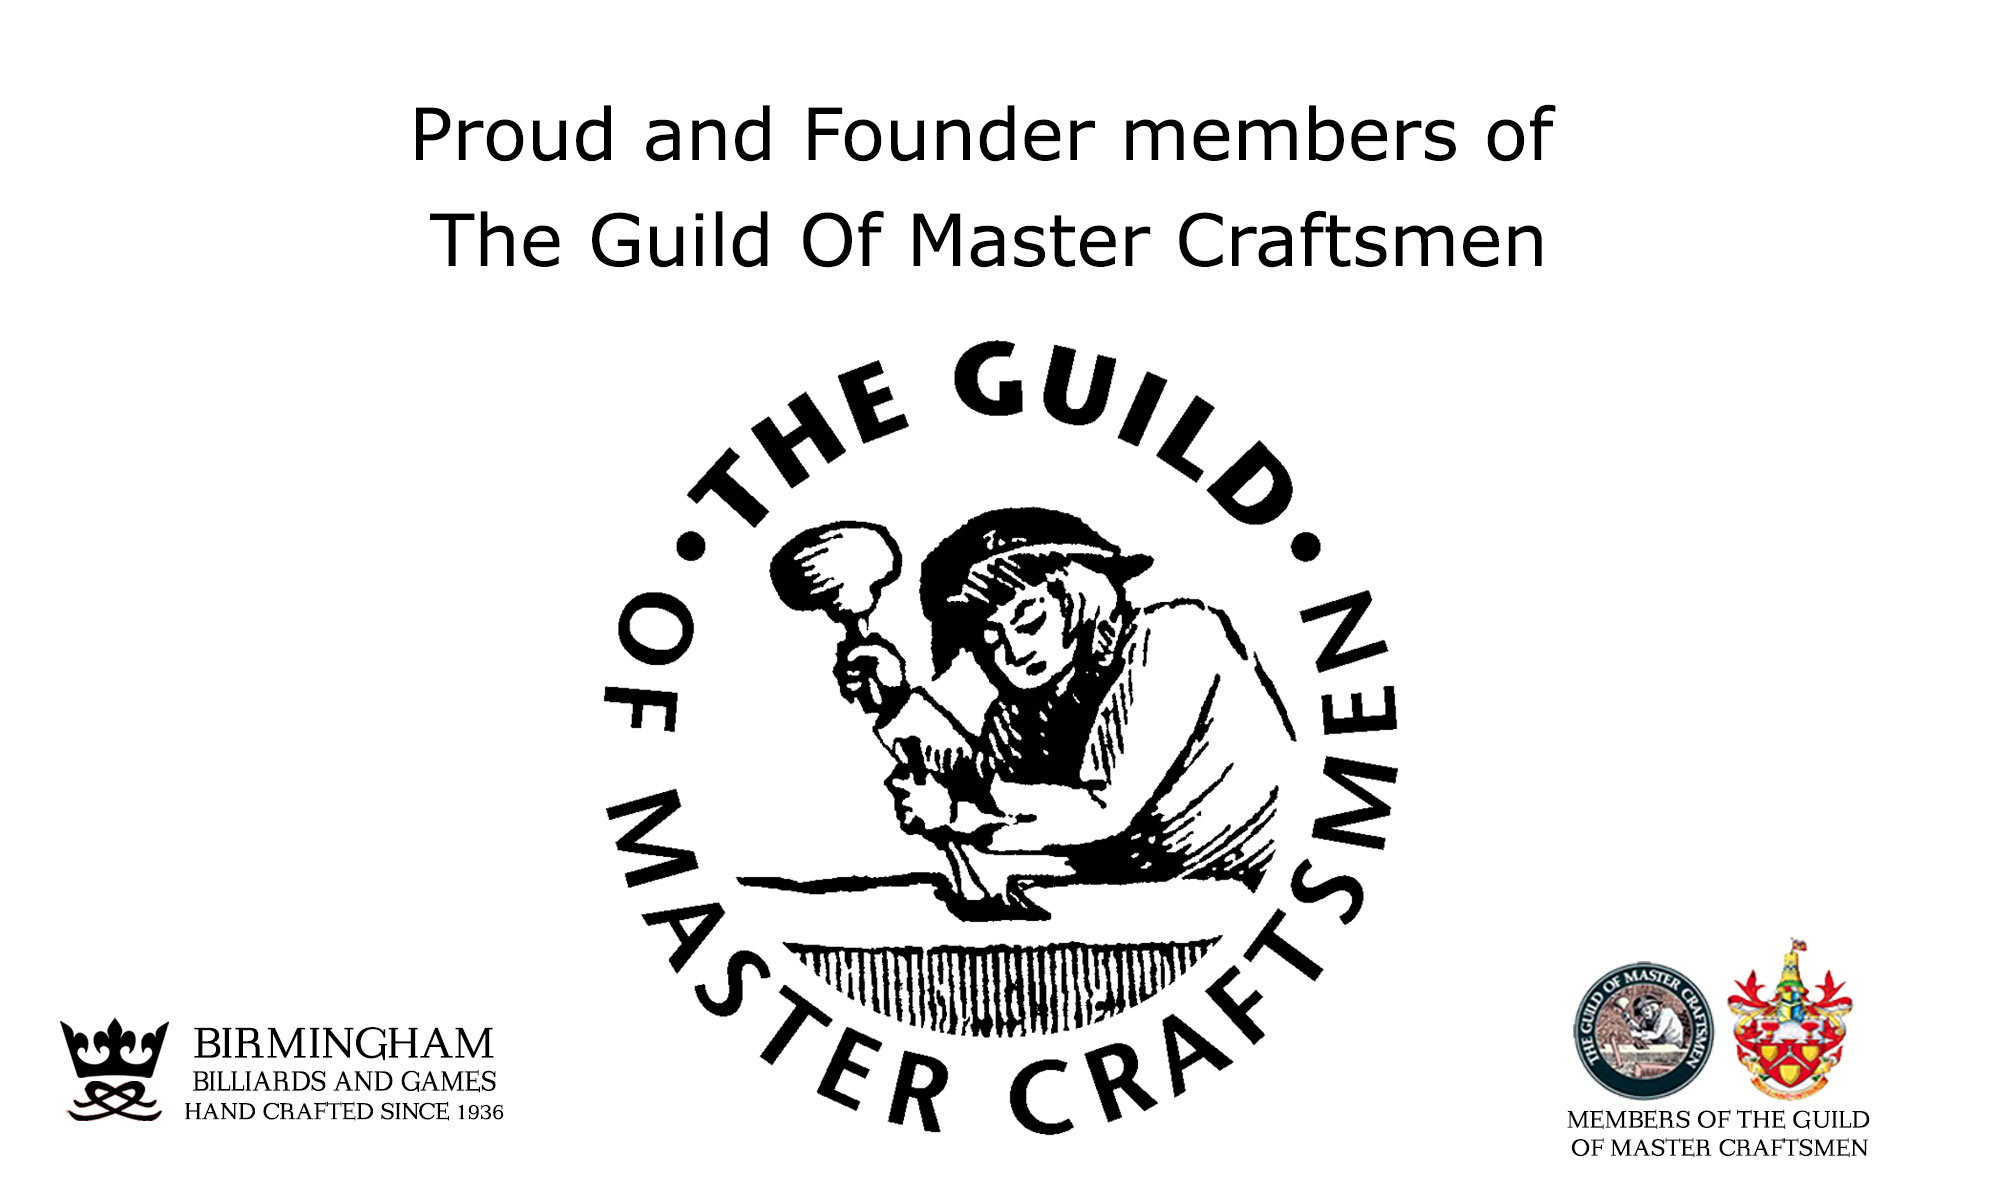 Birmingham Billiards are members of The guild of master craftsmen